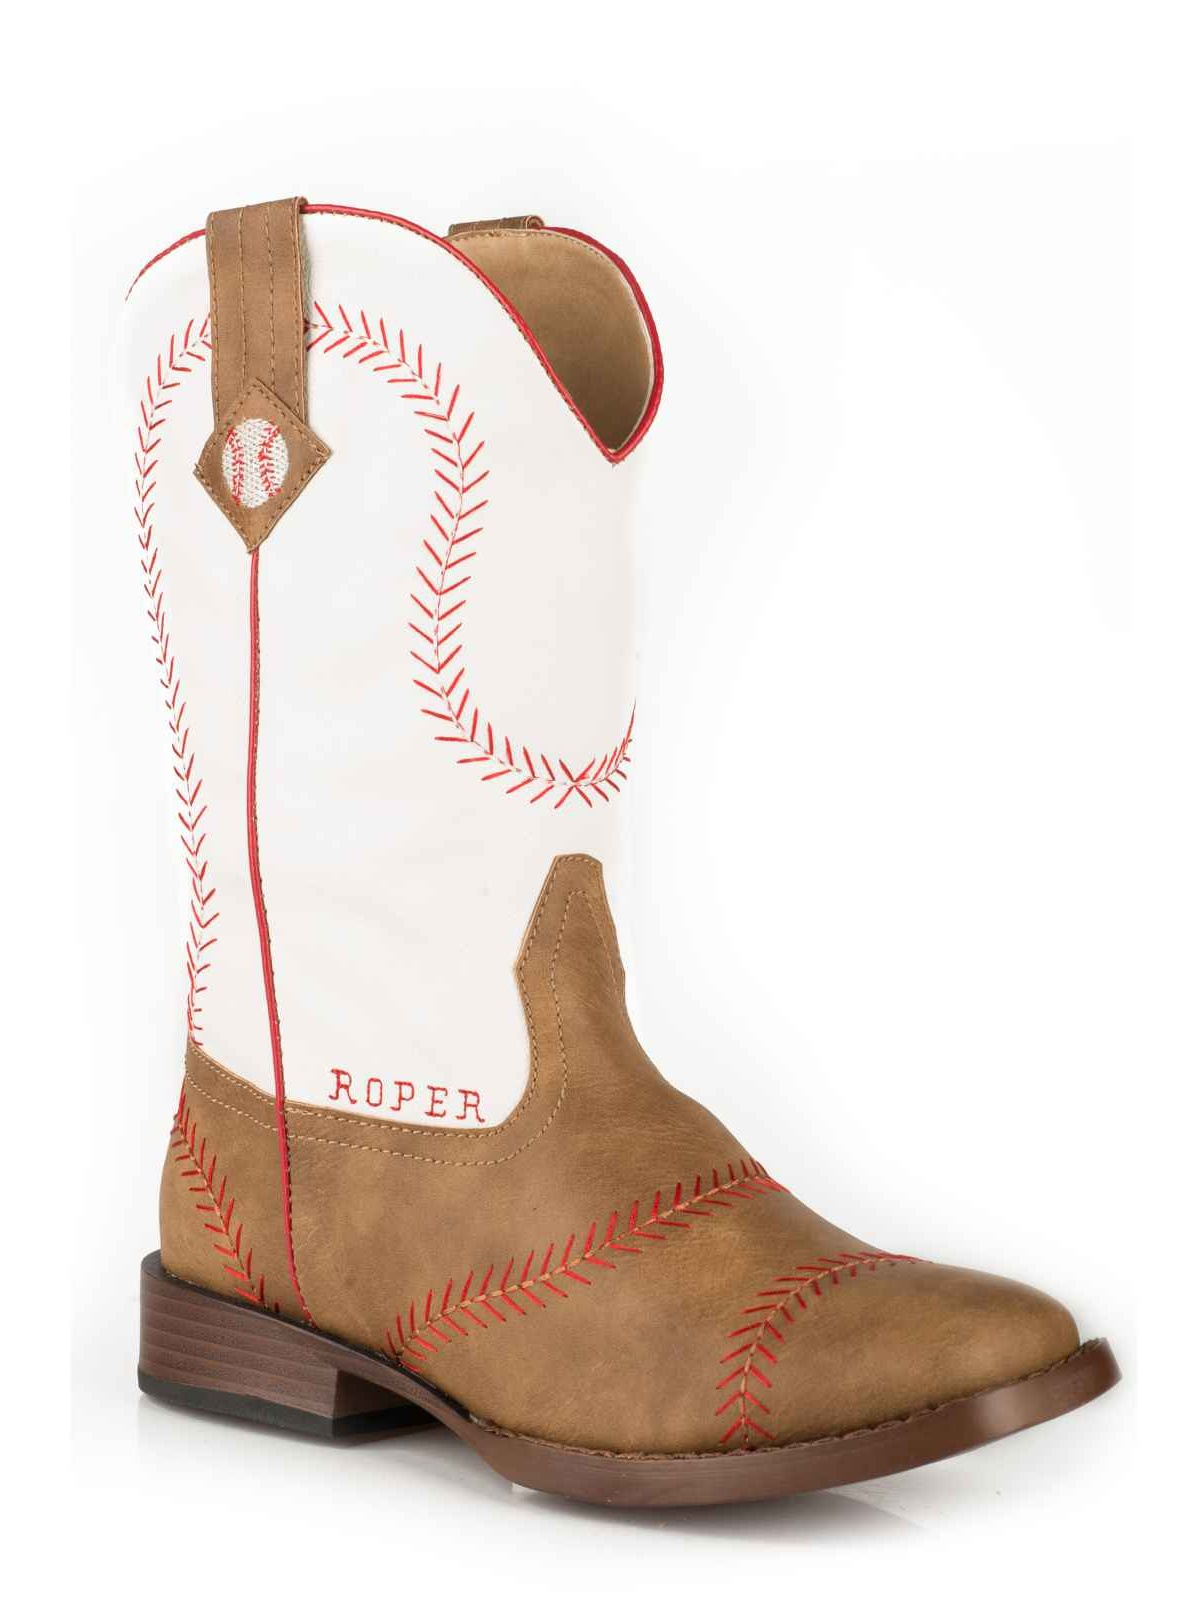 Roper 1902 Tan Vintage Faux Leather Baseball Stitching White